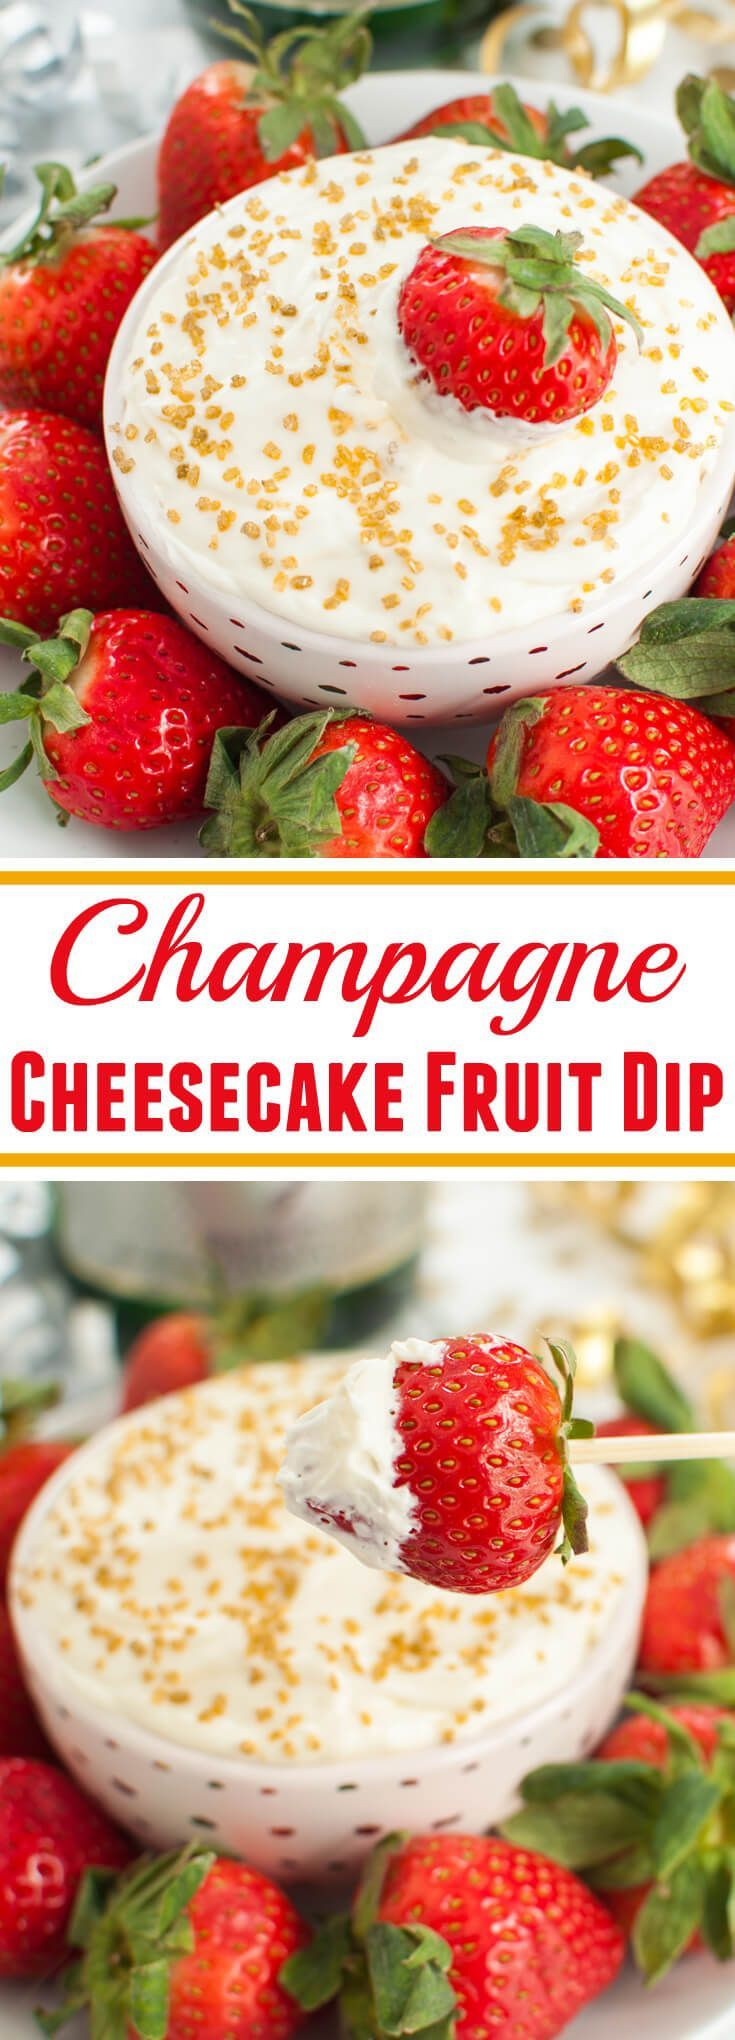 4 ingredient boozy dessert! Champagne cheesecake fruit dip is perfect with strawberries for a bridal shower, special occasions, girls night or adult party.